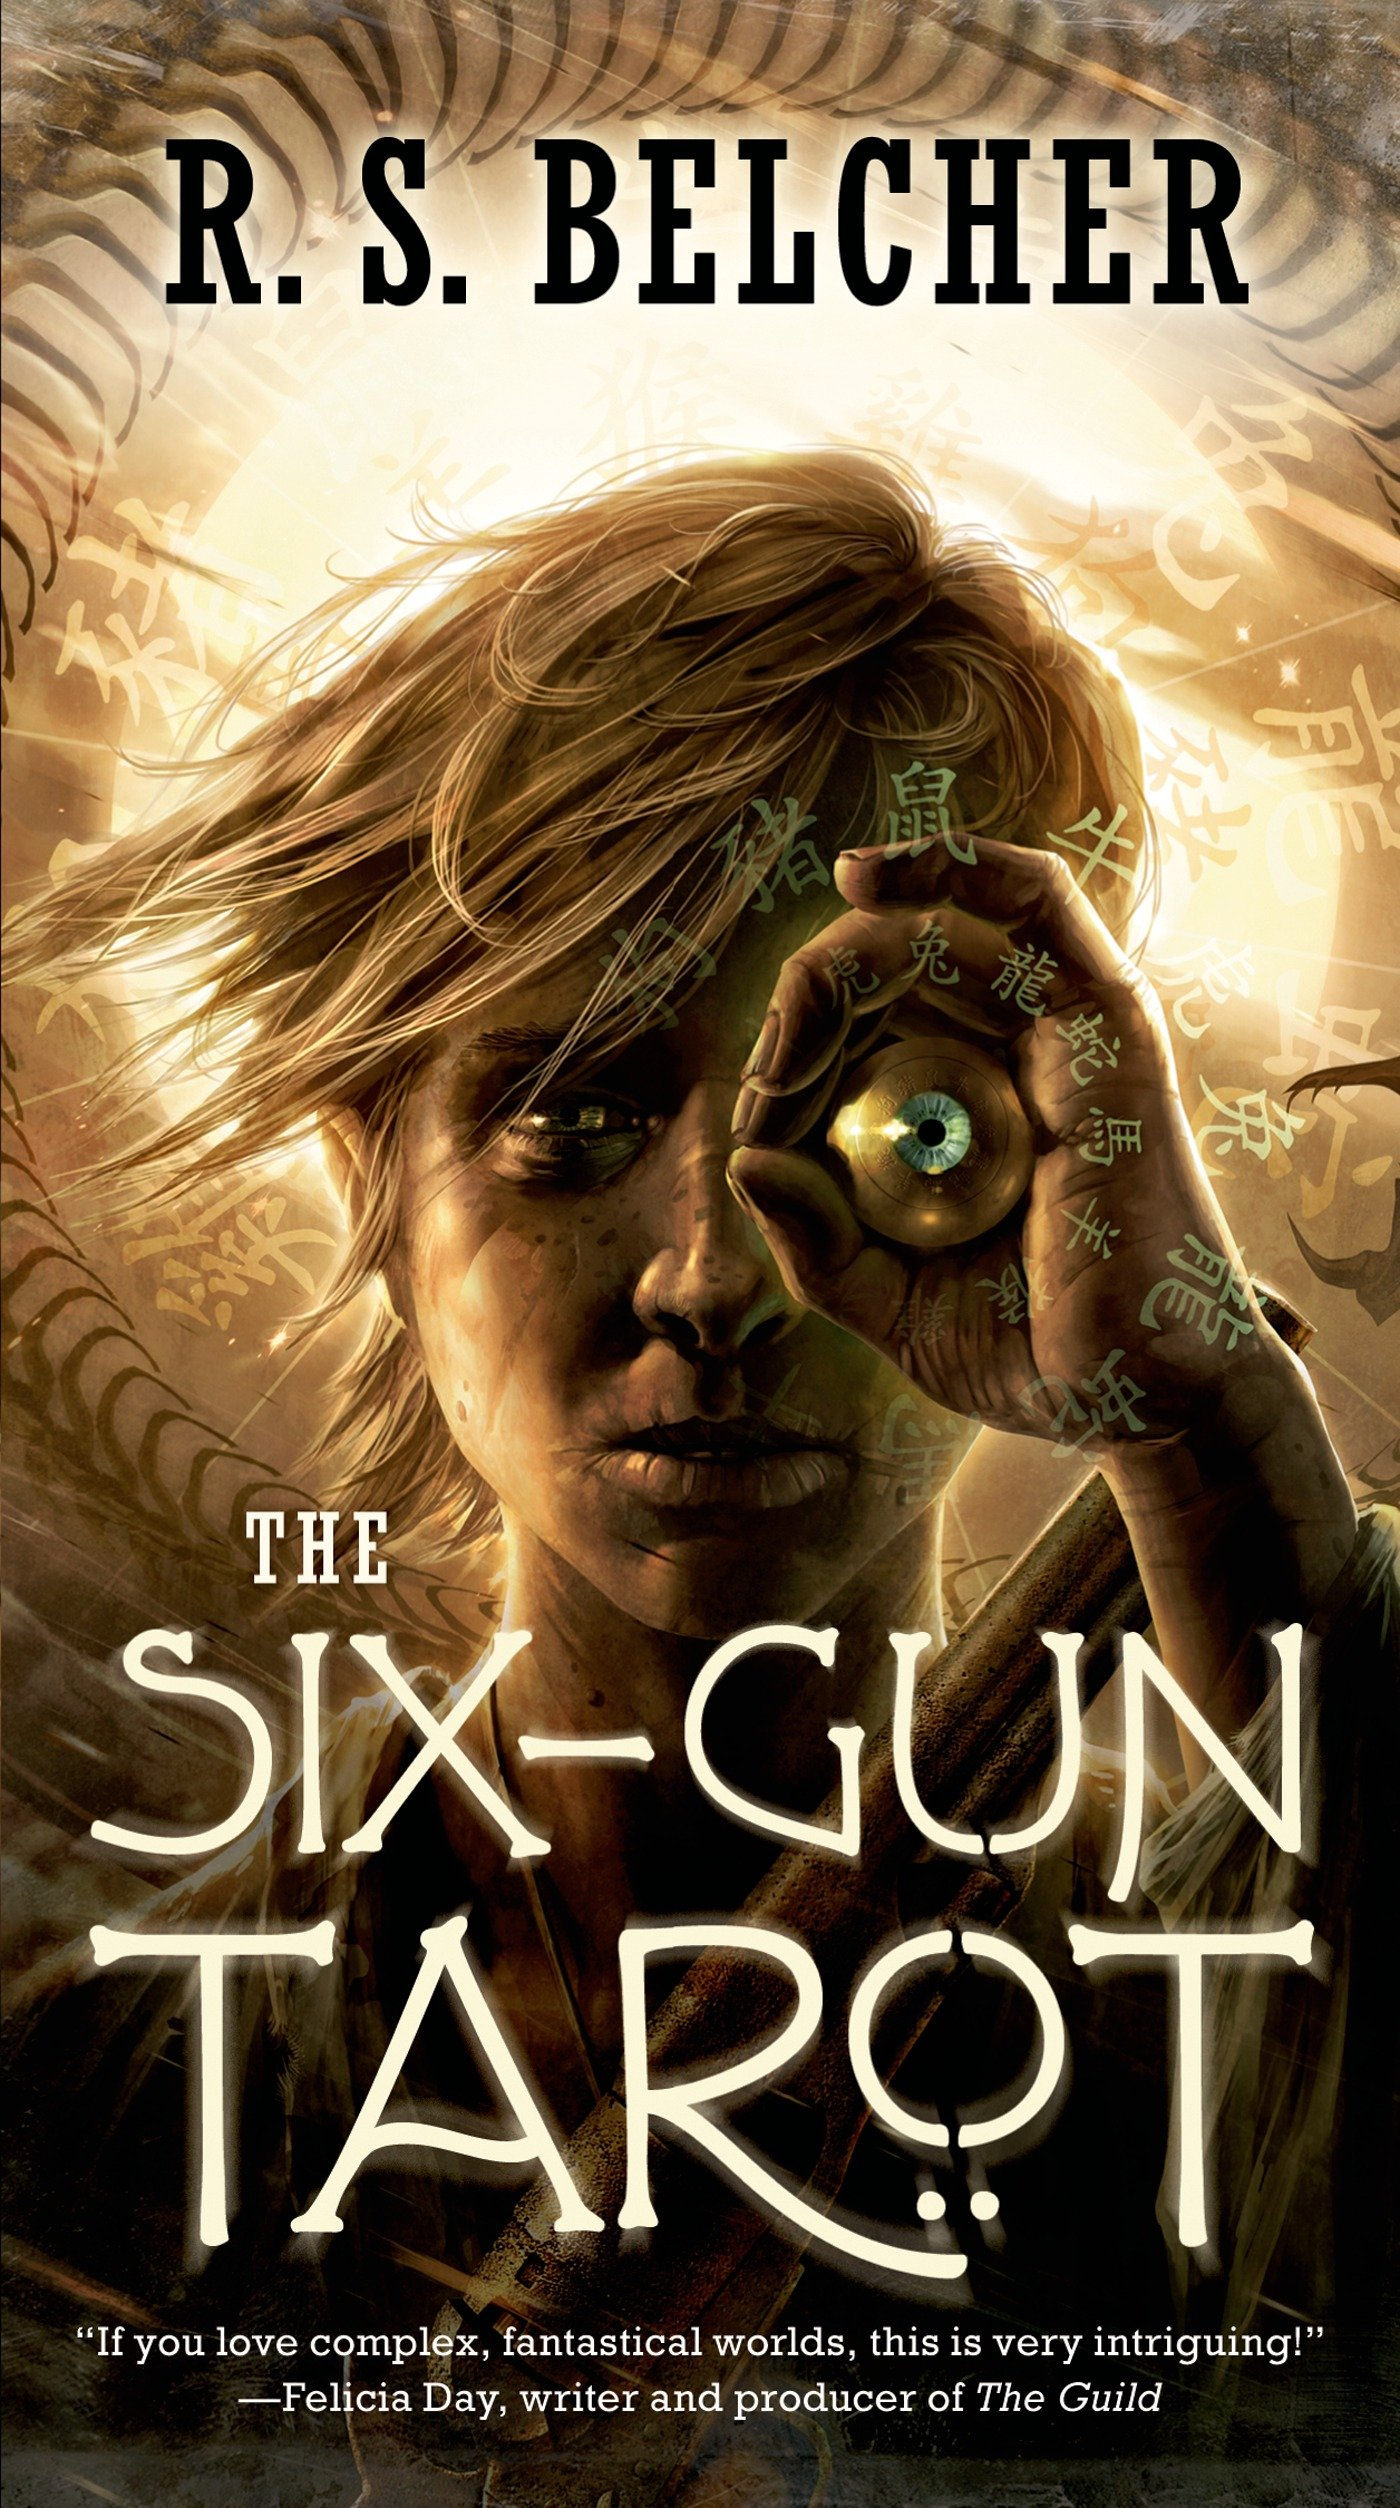 The Six-Gun Tarot (Golgotha) pdf